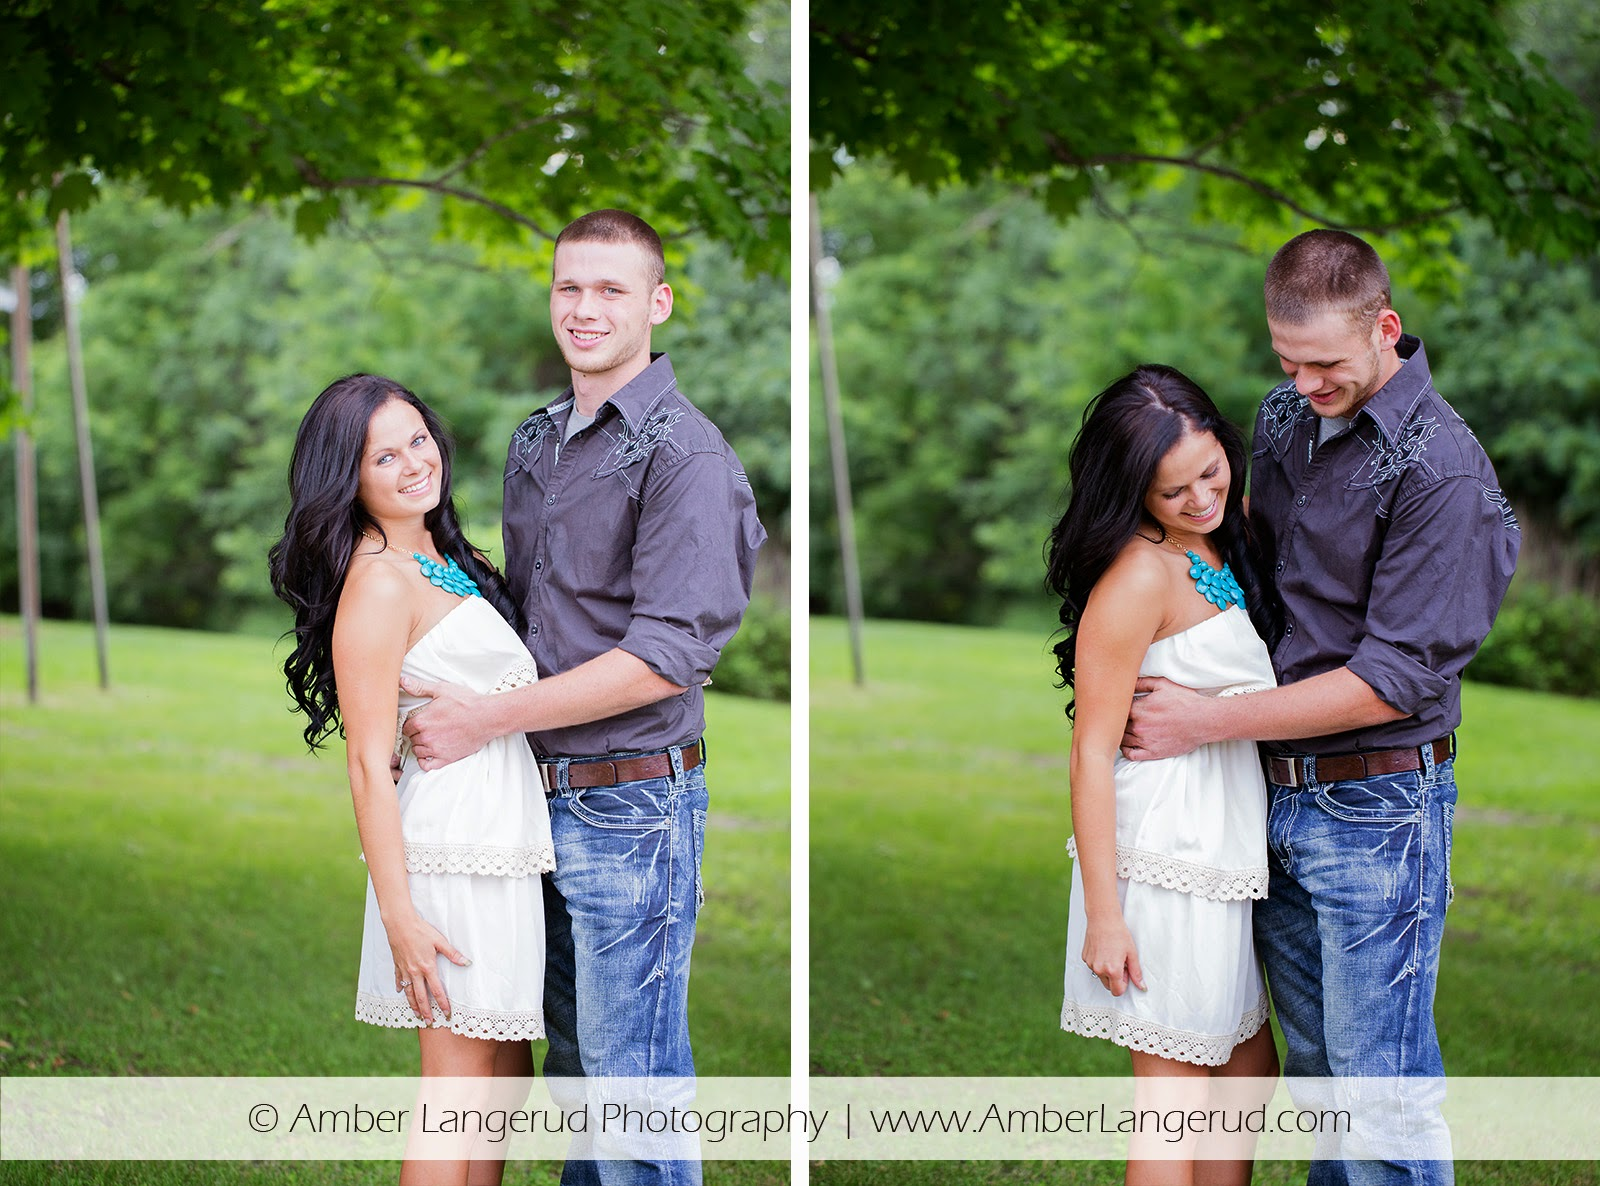 Outdoor Country Engagement Pictures | Detroit Lakes Area Photographer | Engagement Photos with Semi Dressy Outfit